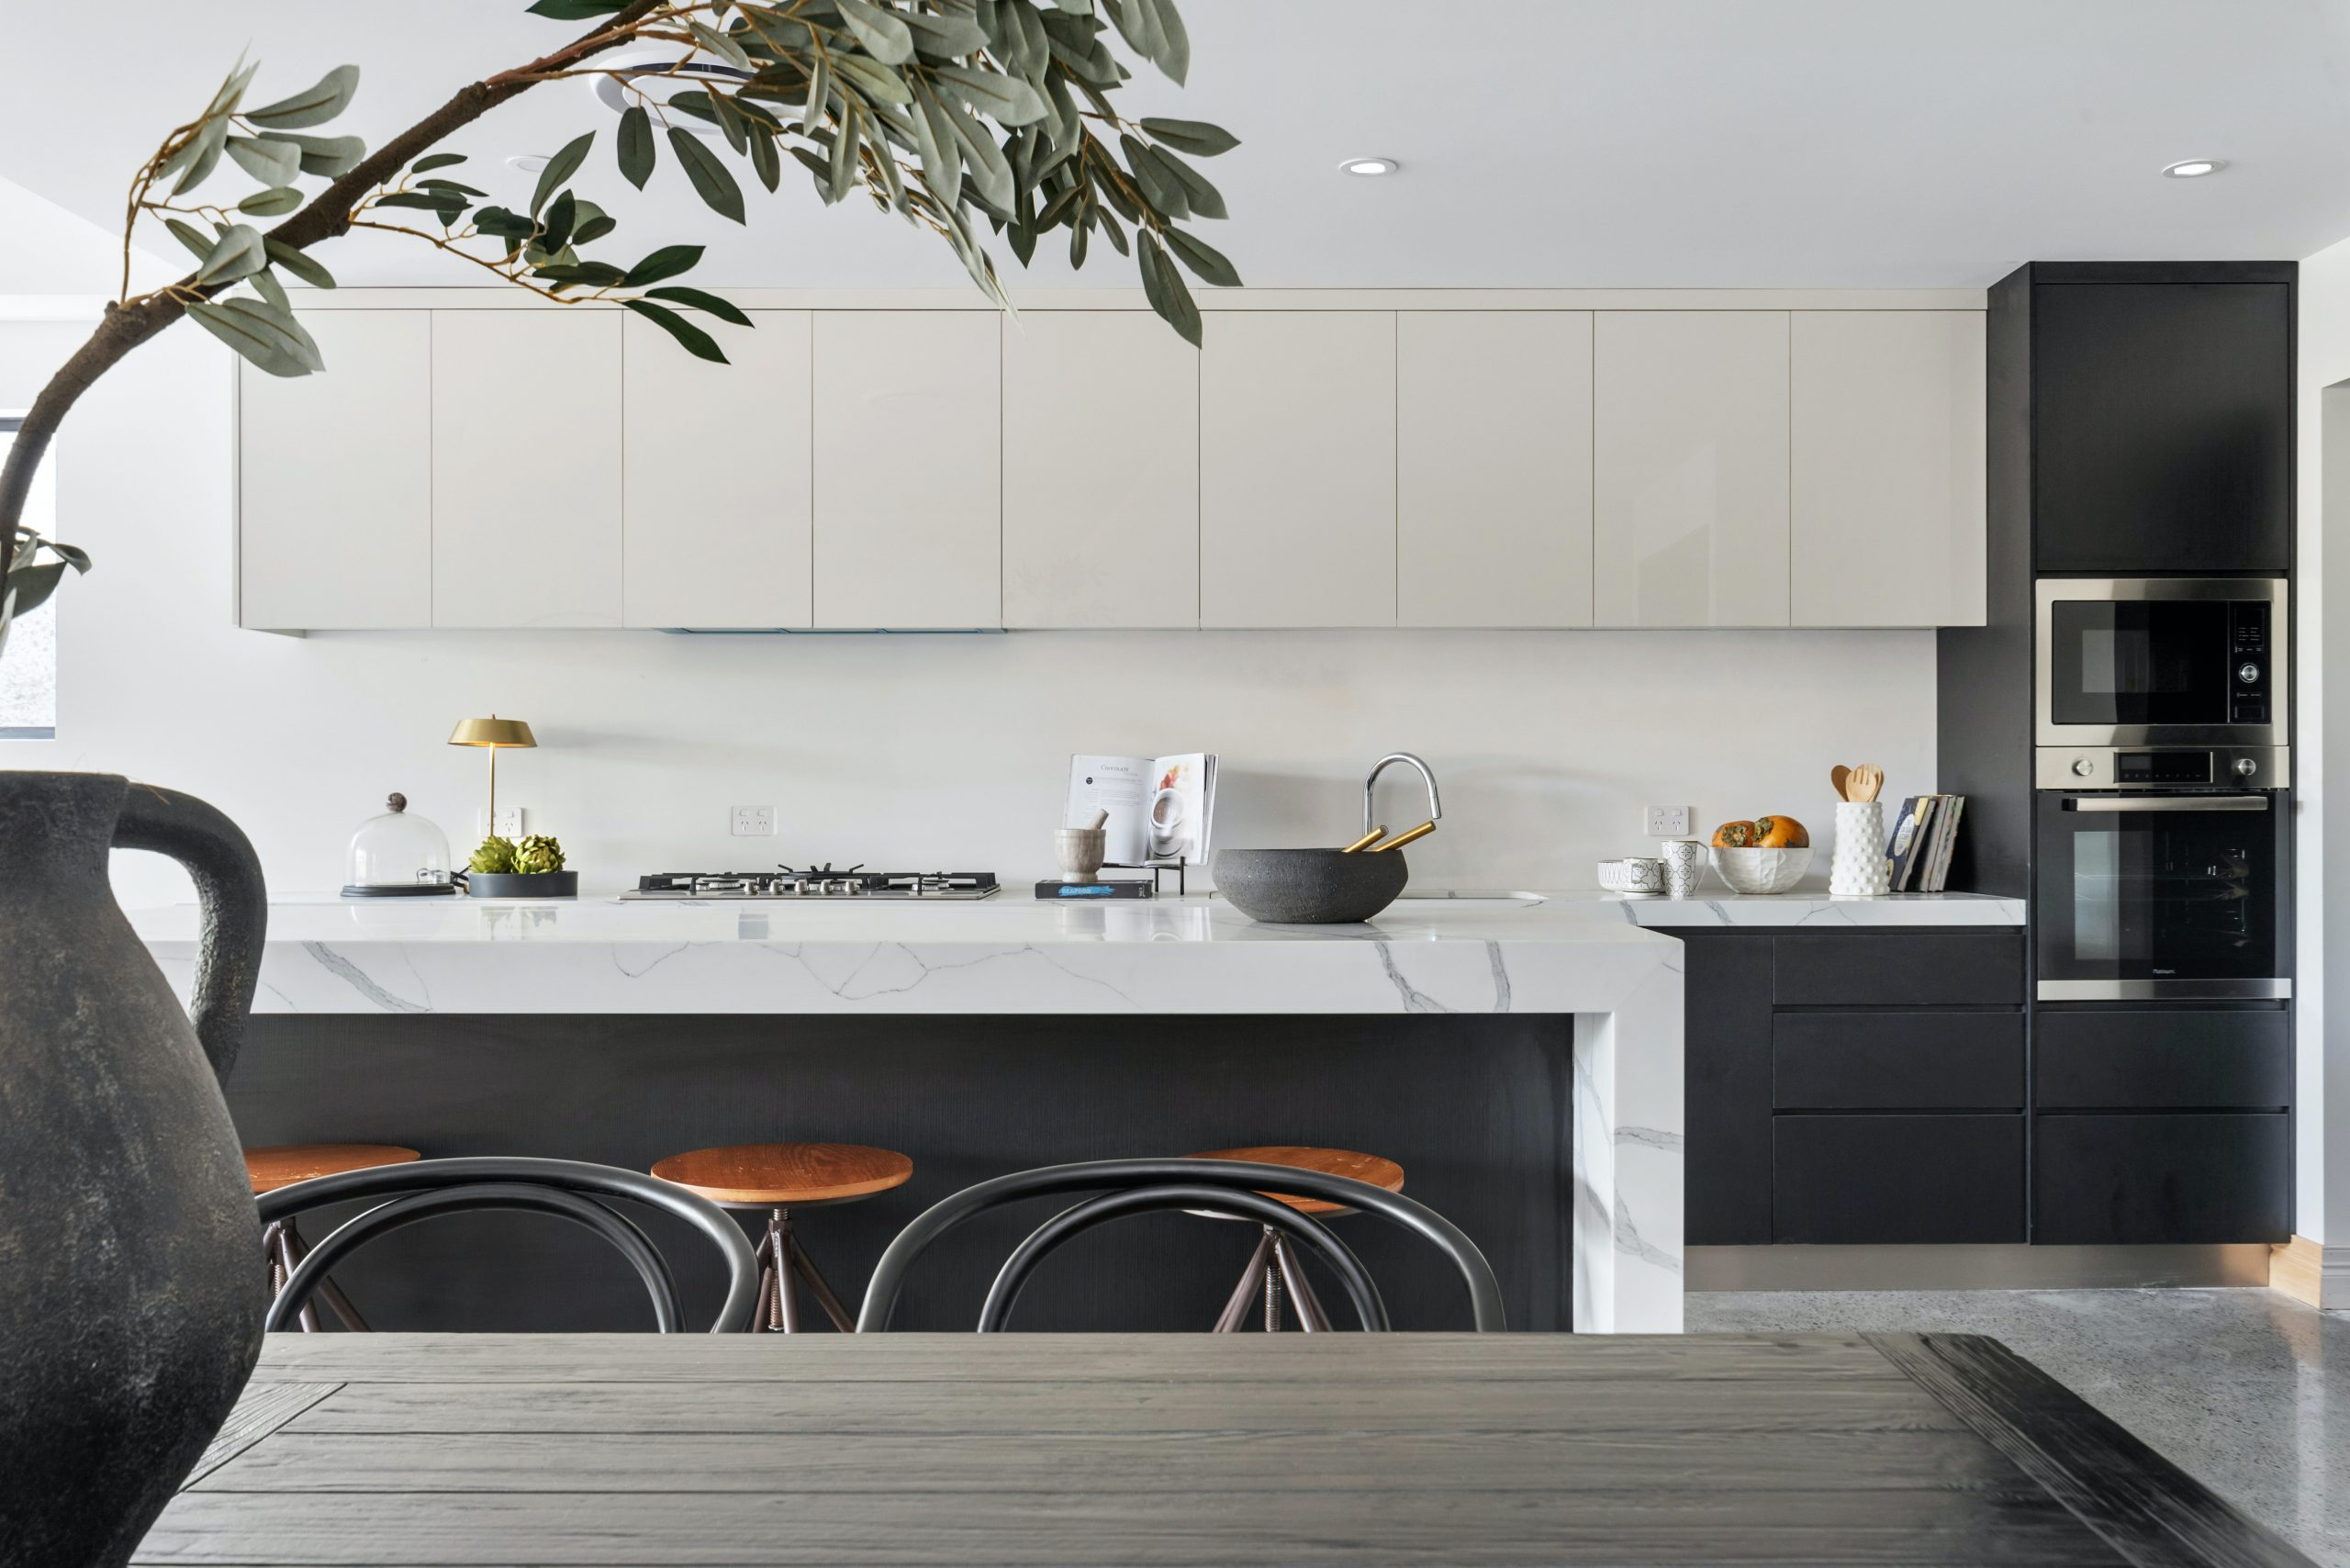 5 Helpful Tips to Get Grease Off a Glass Splashback